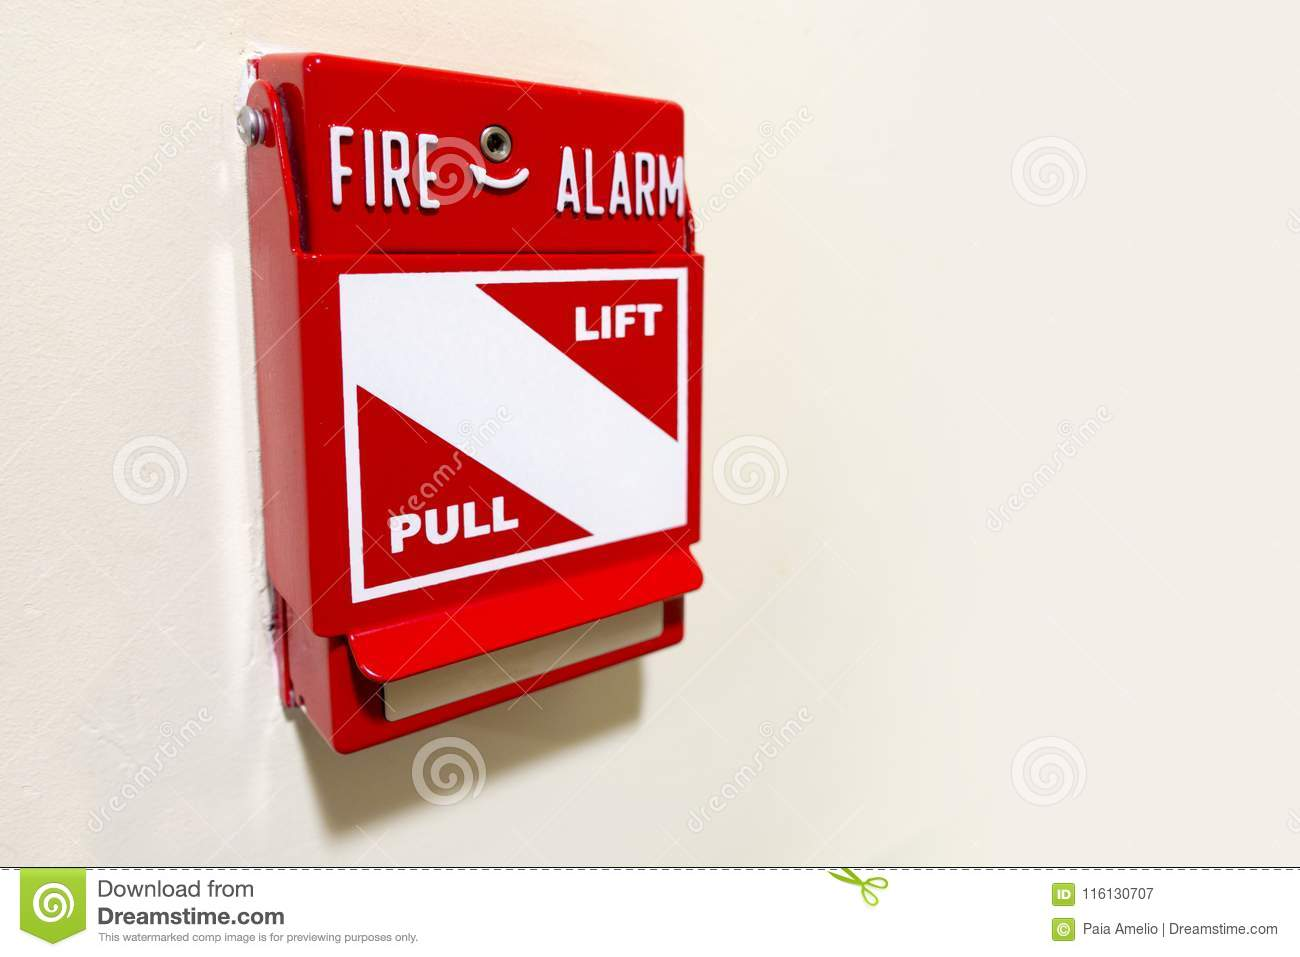 Fire Alarm Manual Lift And Pull Stock Image - Image of